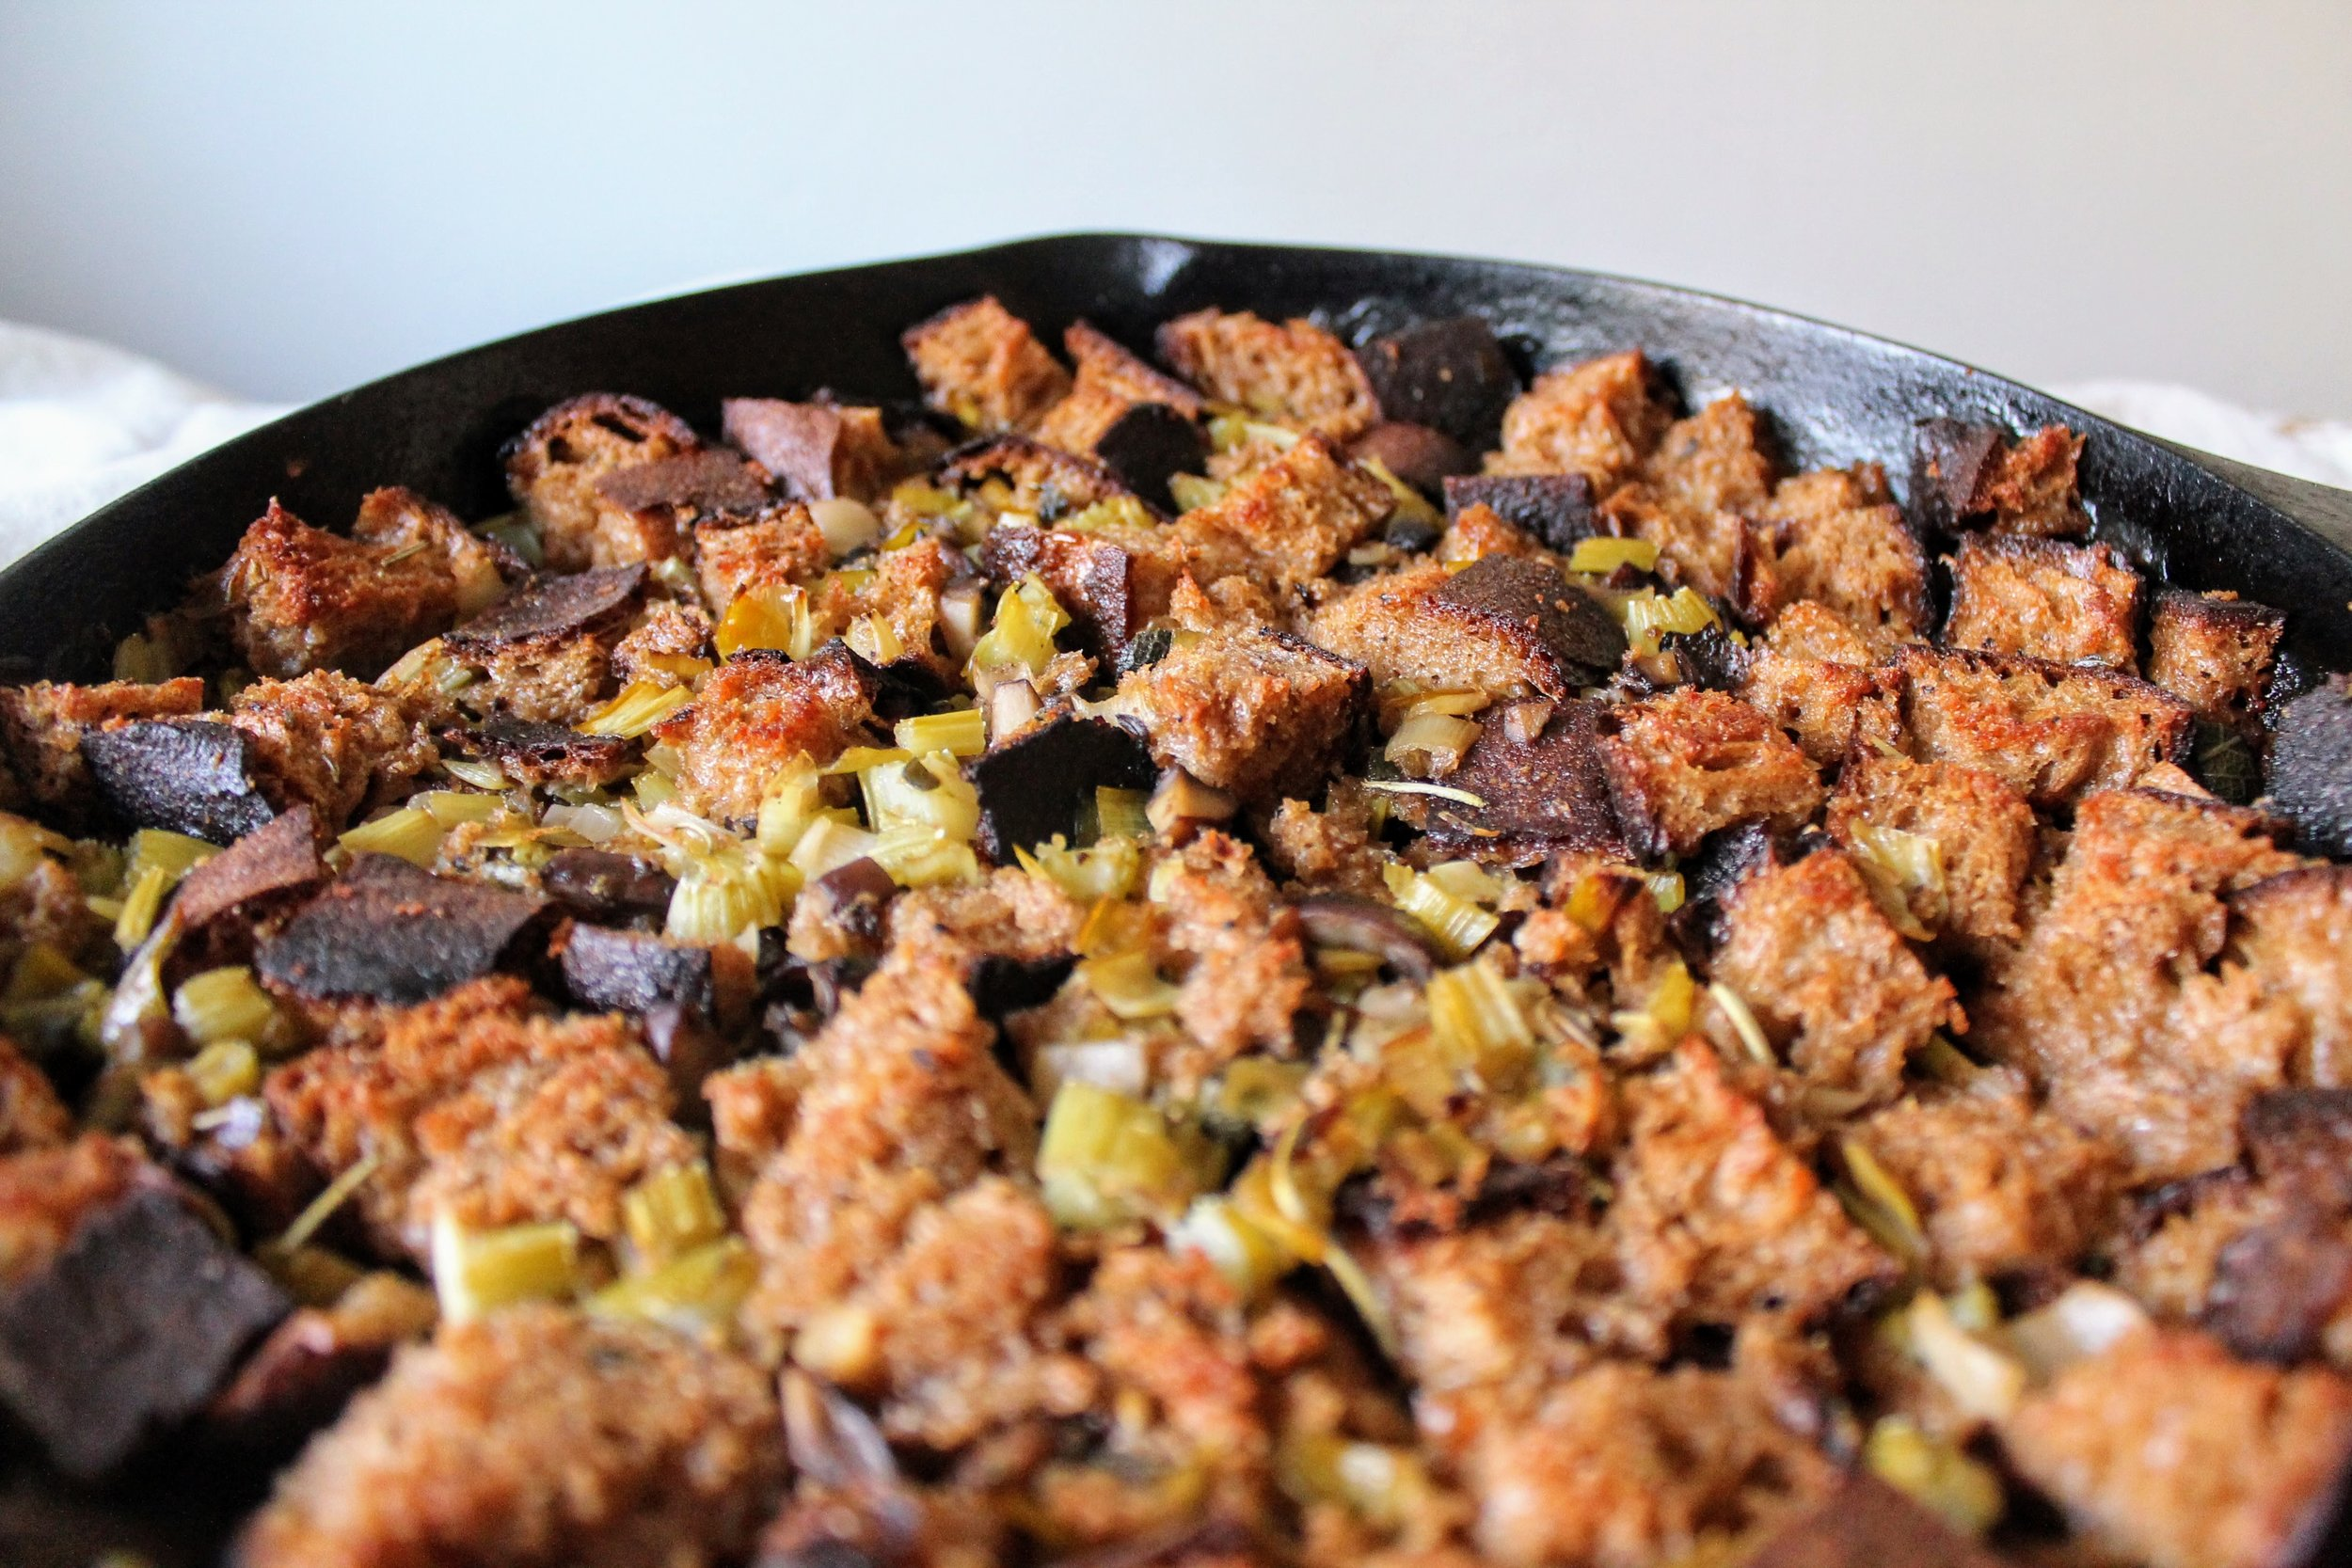 Thanksgiving Stuffing with Sourdough, Leeks, and Mushrooms